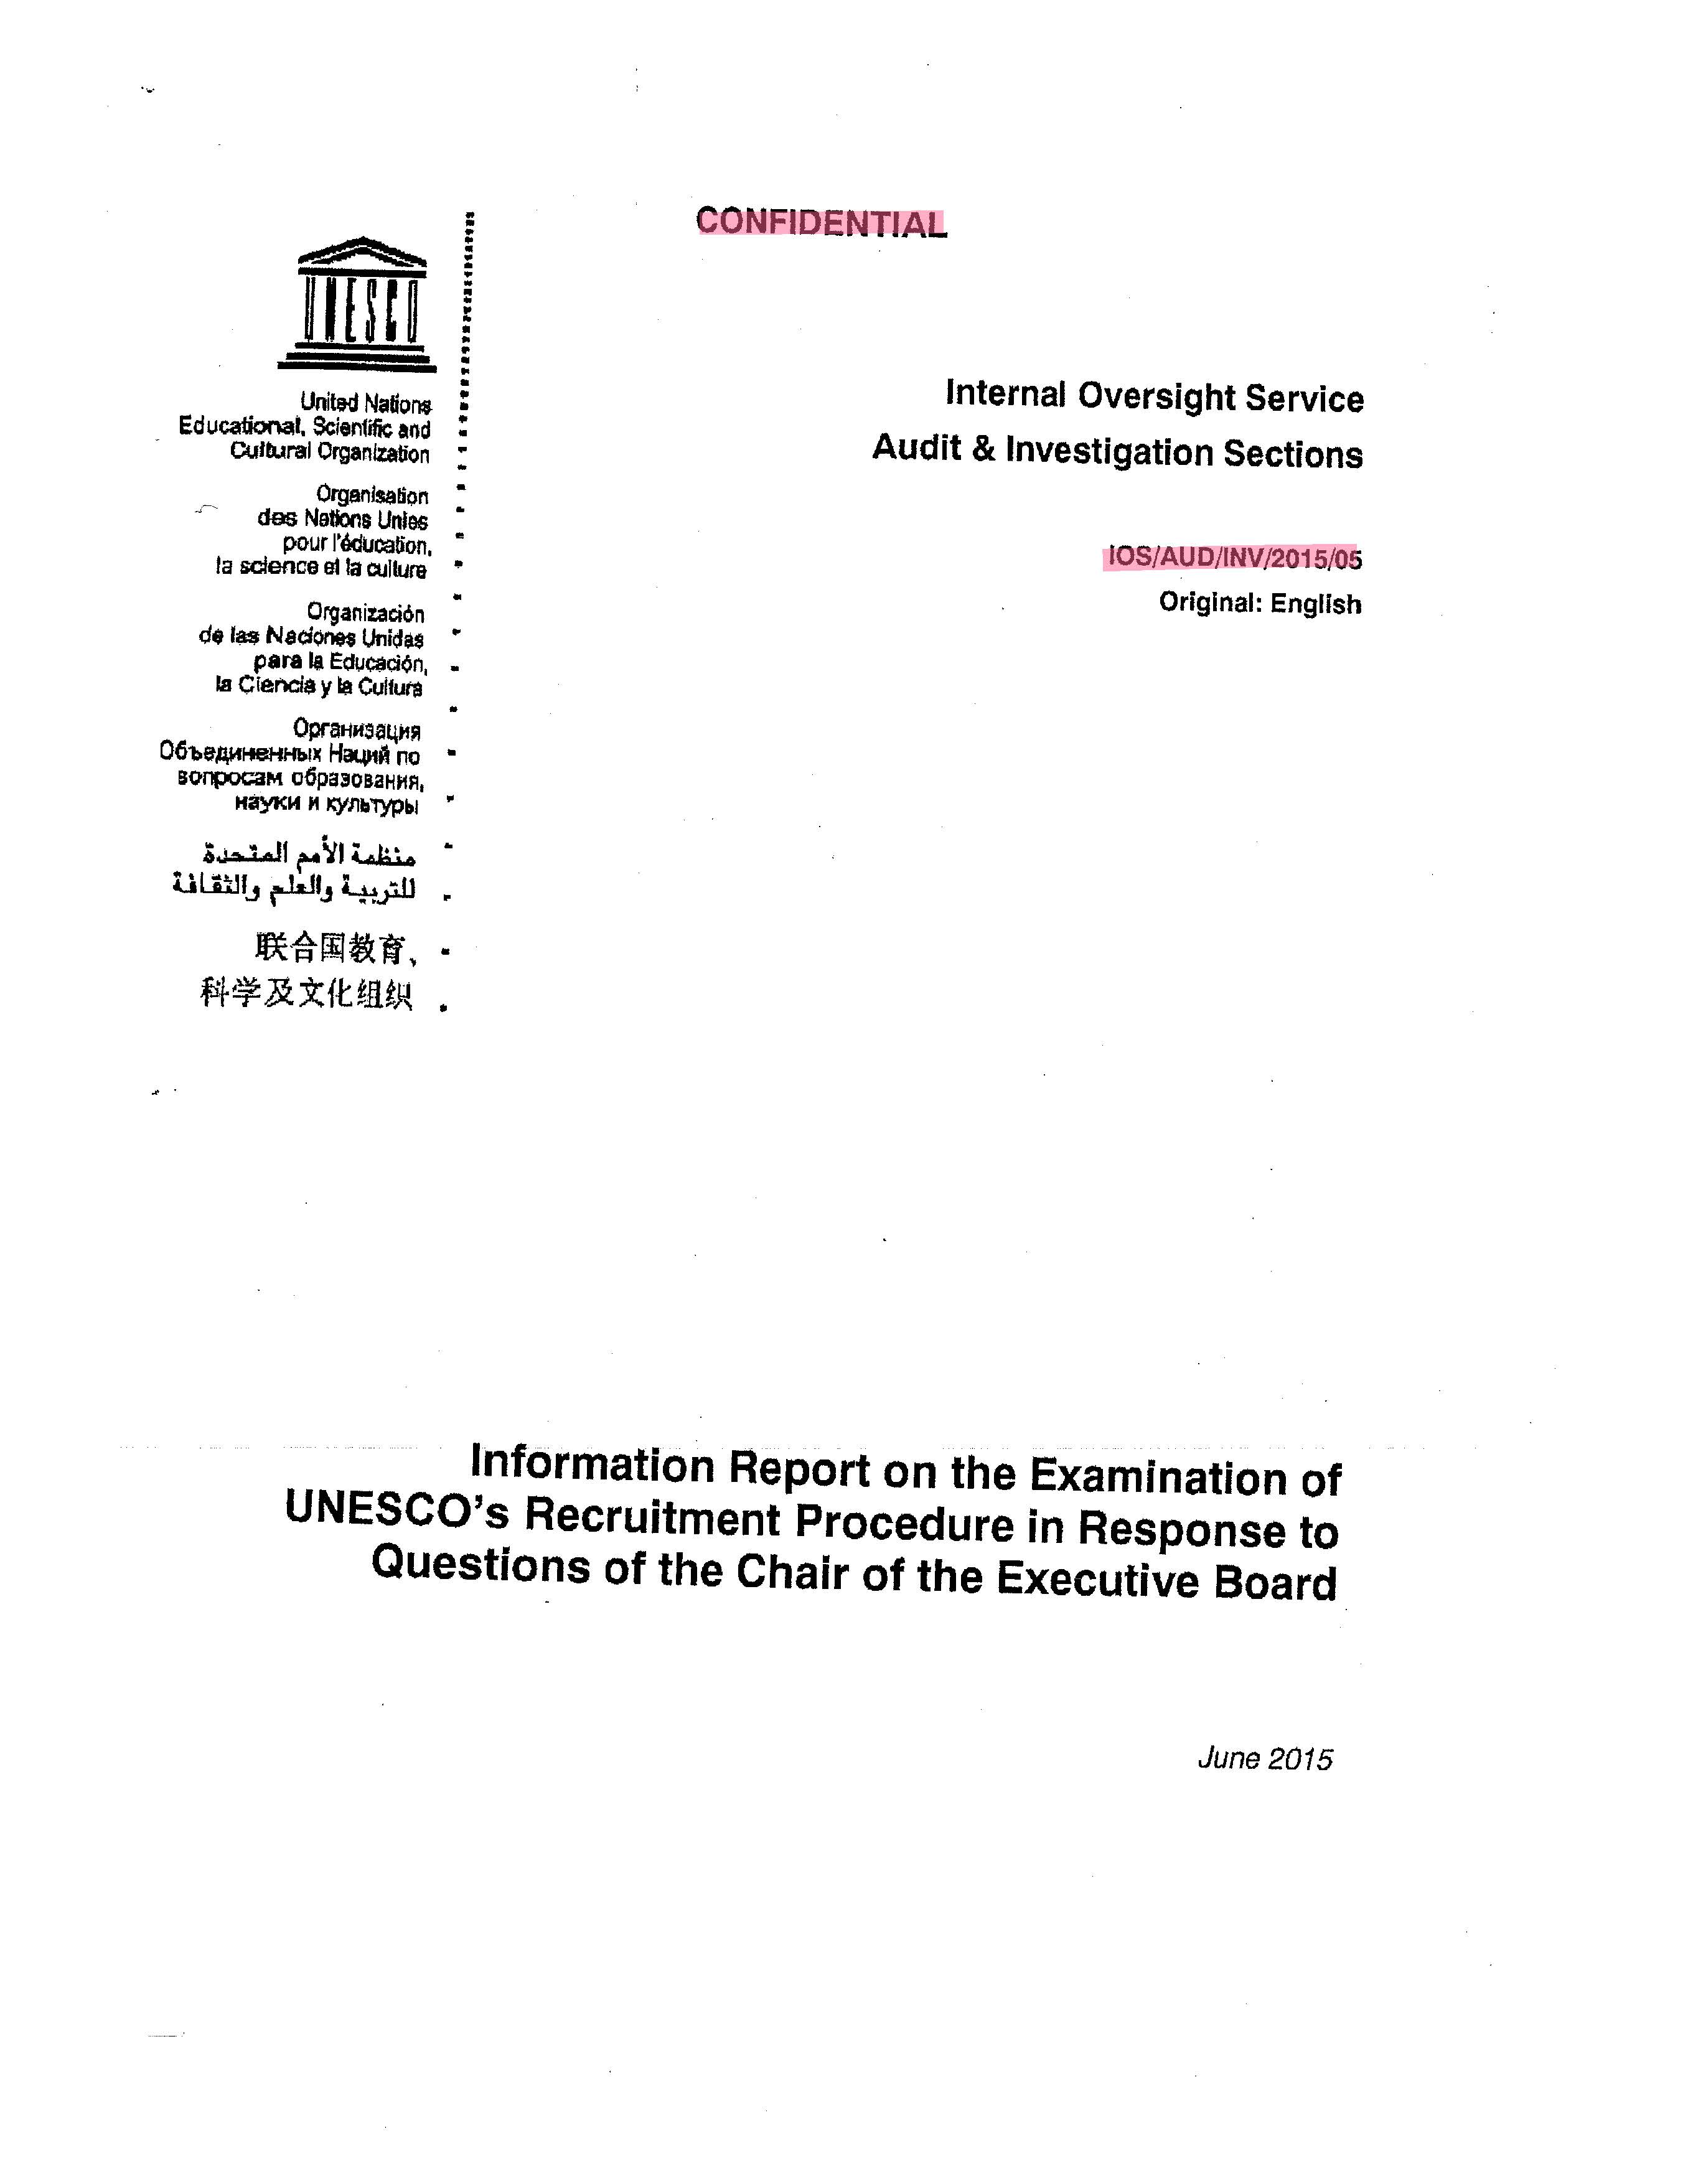 Bulgarian UNESCO Chief Narrowly Escaped Impeachment, Scathing British Report Is Looming